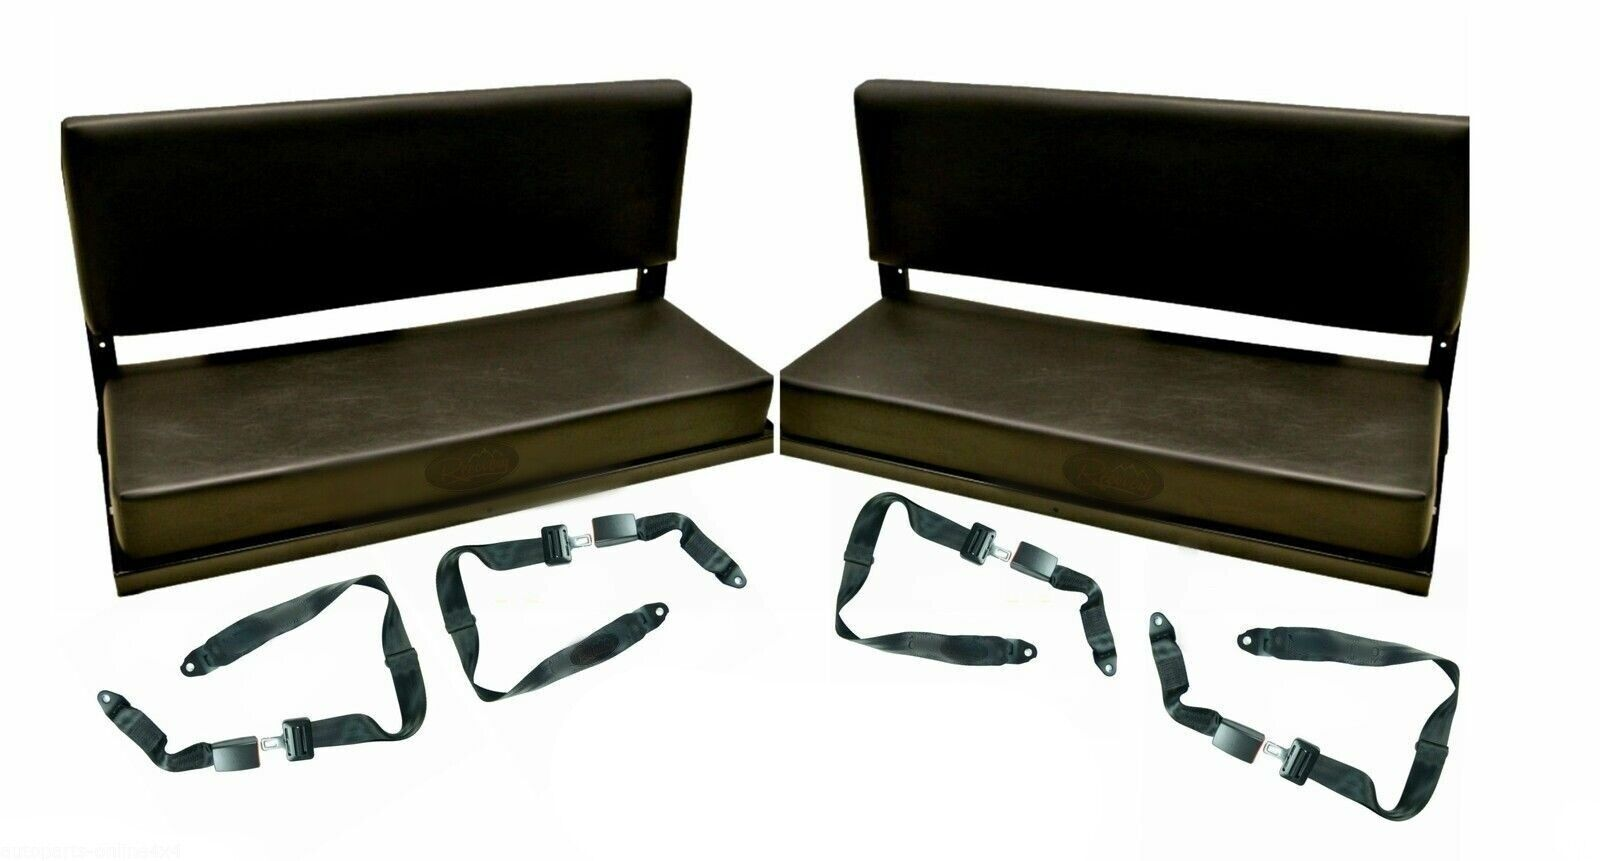 Land Rover Defender 90 110 2 Folding Rear Bench Seats 4